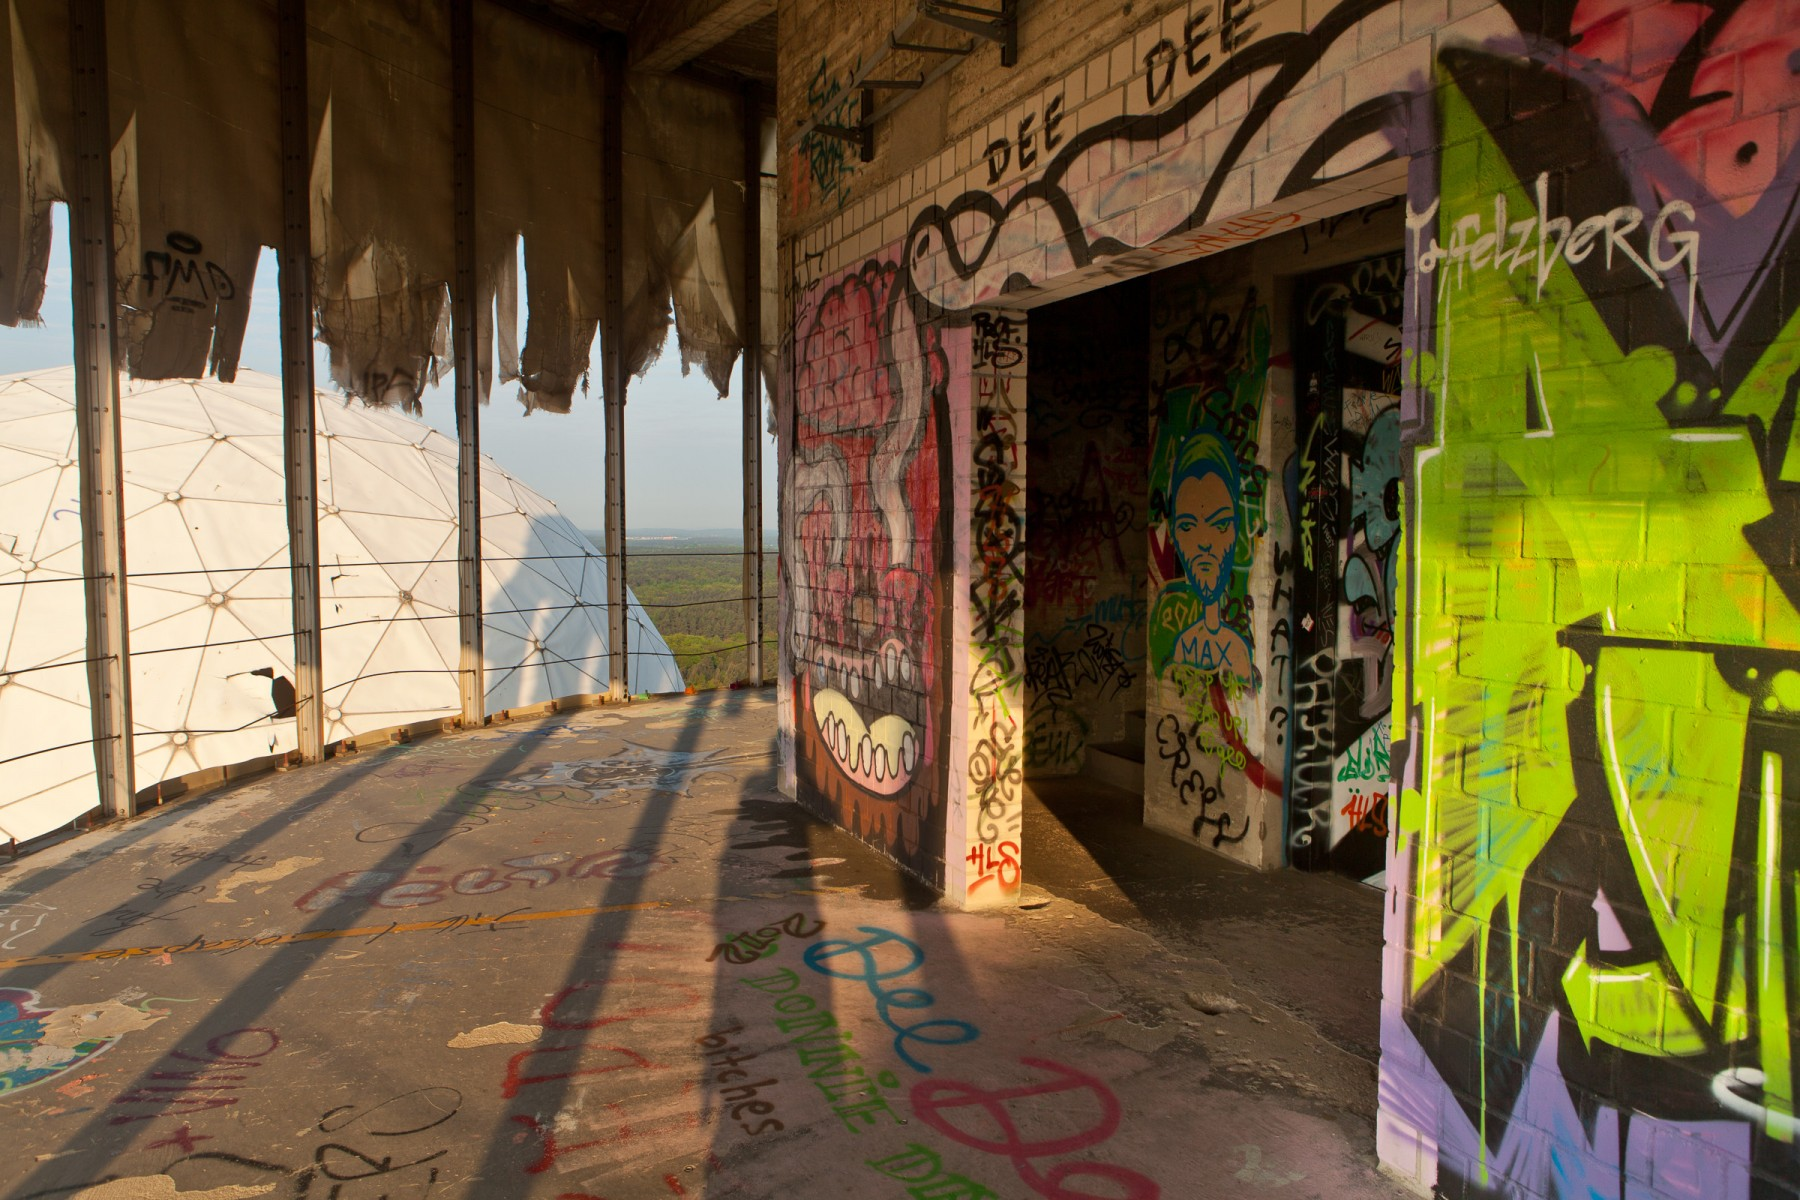 Graffiti at Teufelsberg.